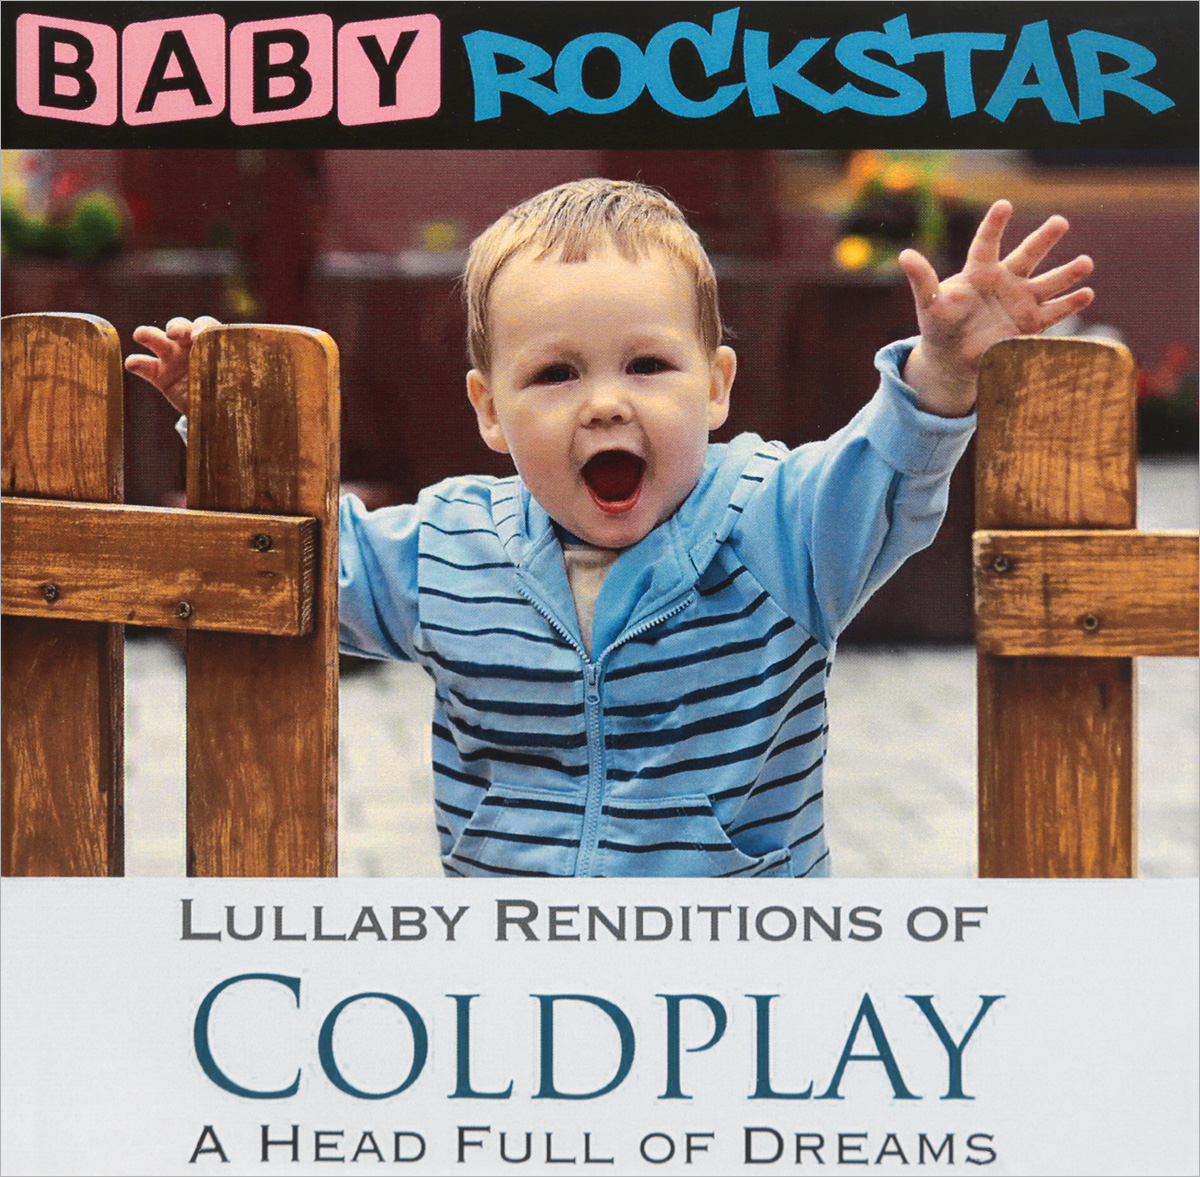 Coldplay Baby Rockstar. Lullaby Renditions Of Coldplay. A Head Full Of Dreams a quiver full of arrows